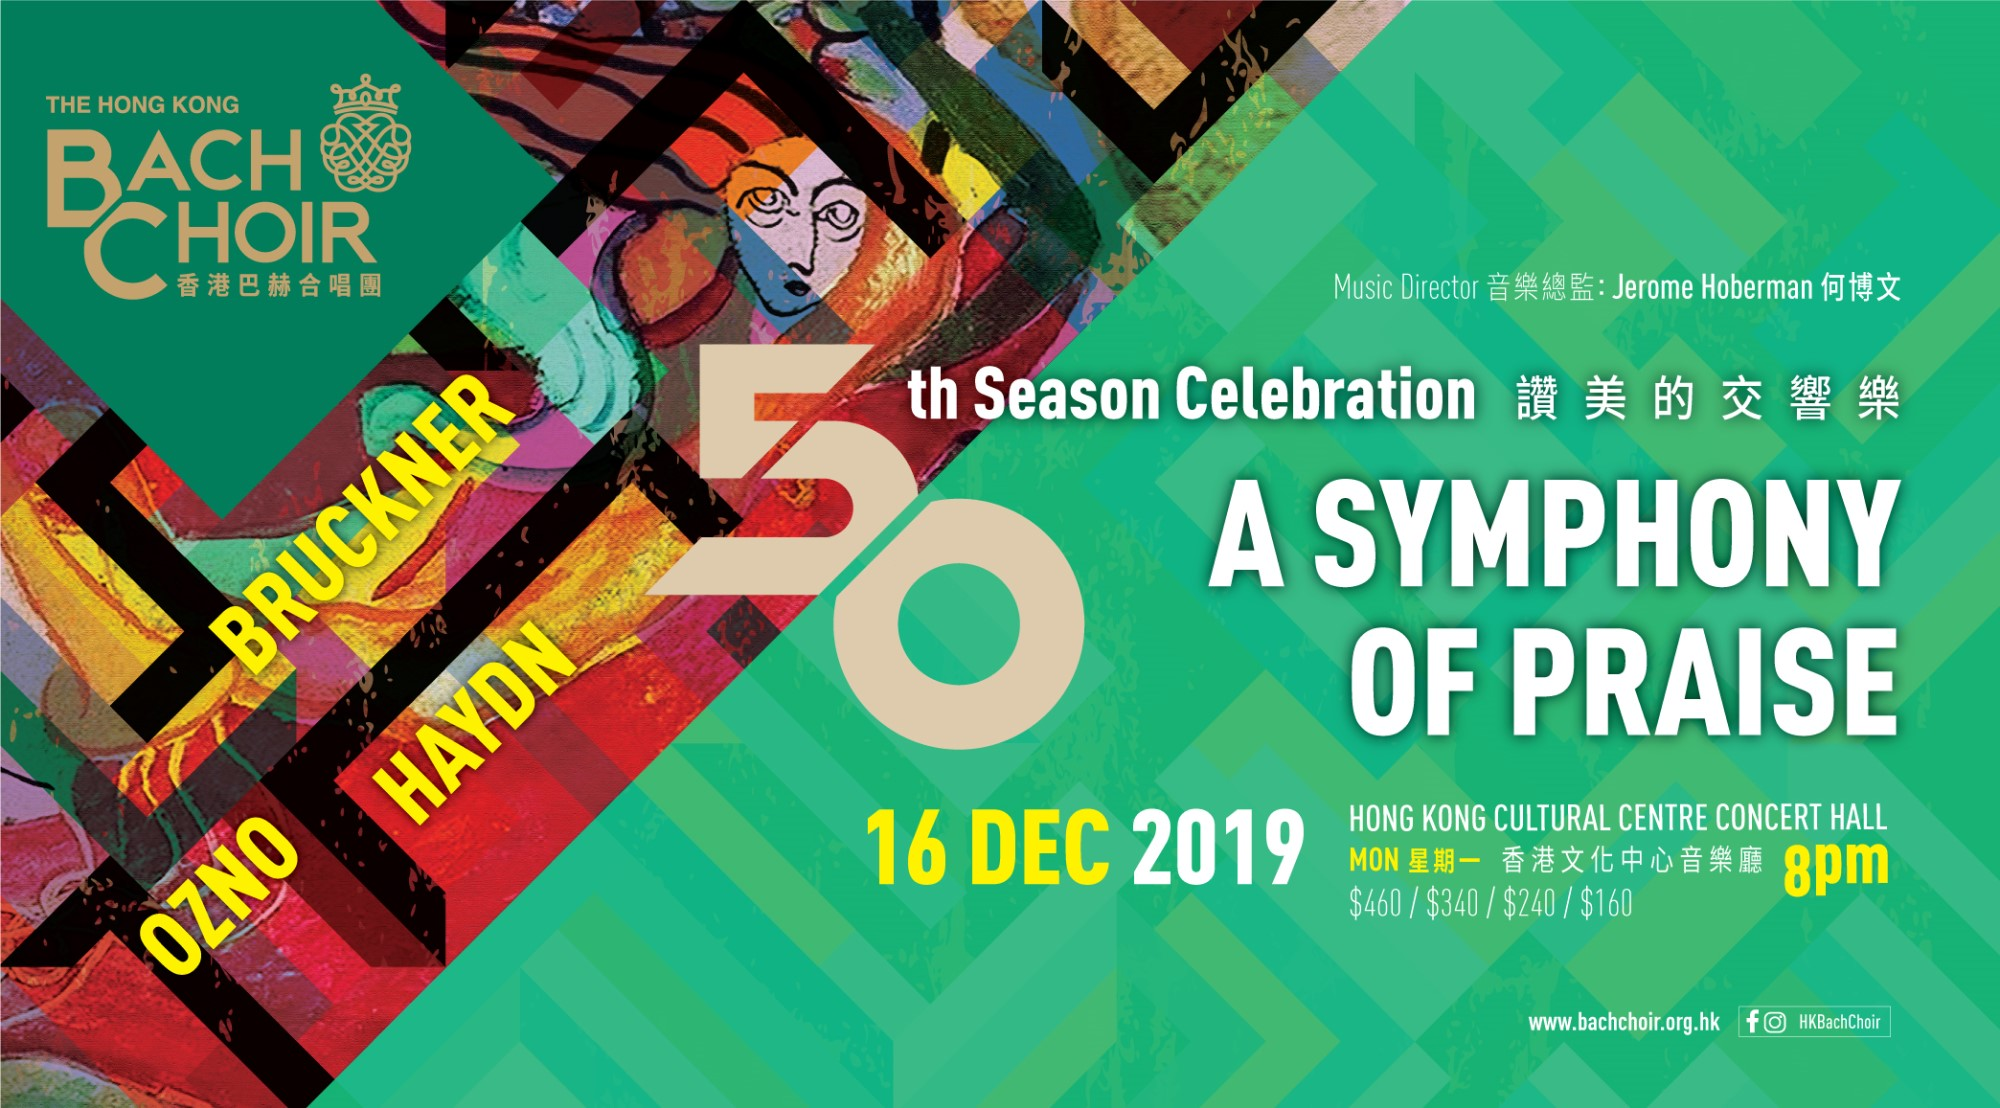 The Hong Kong Bach Choir's 50th Season Celebration Series: A Symphony of Praise